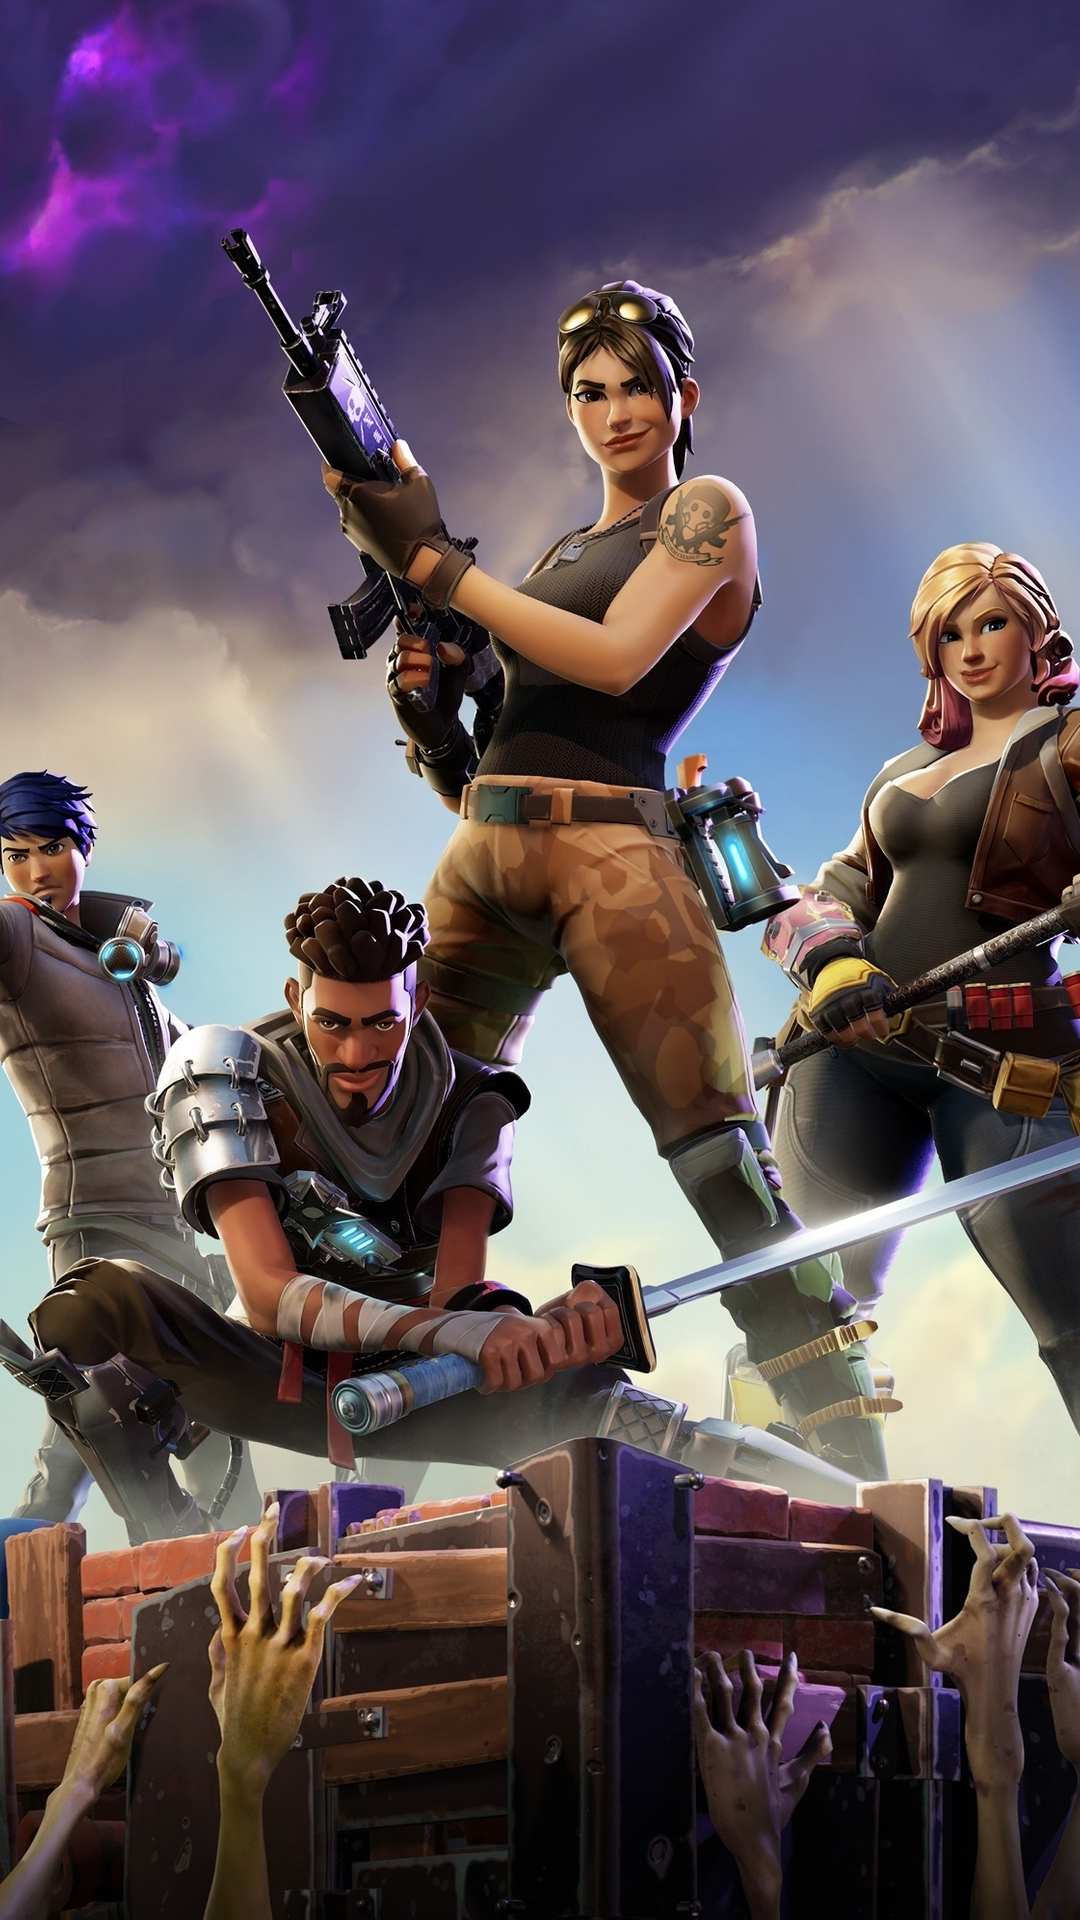 iPhone wallpaper fortnite2 Fortnite